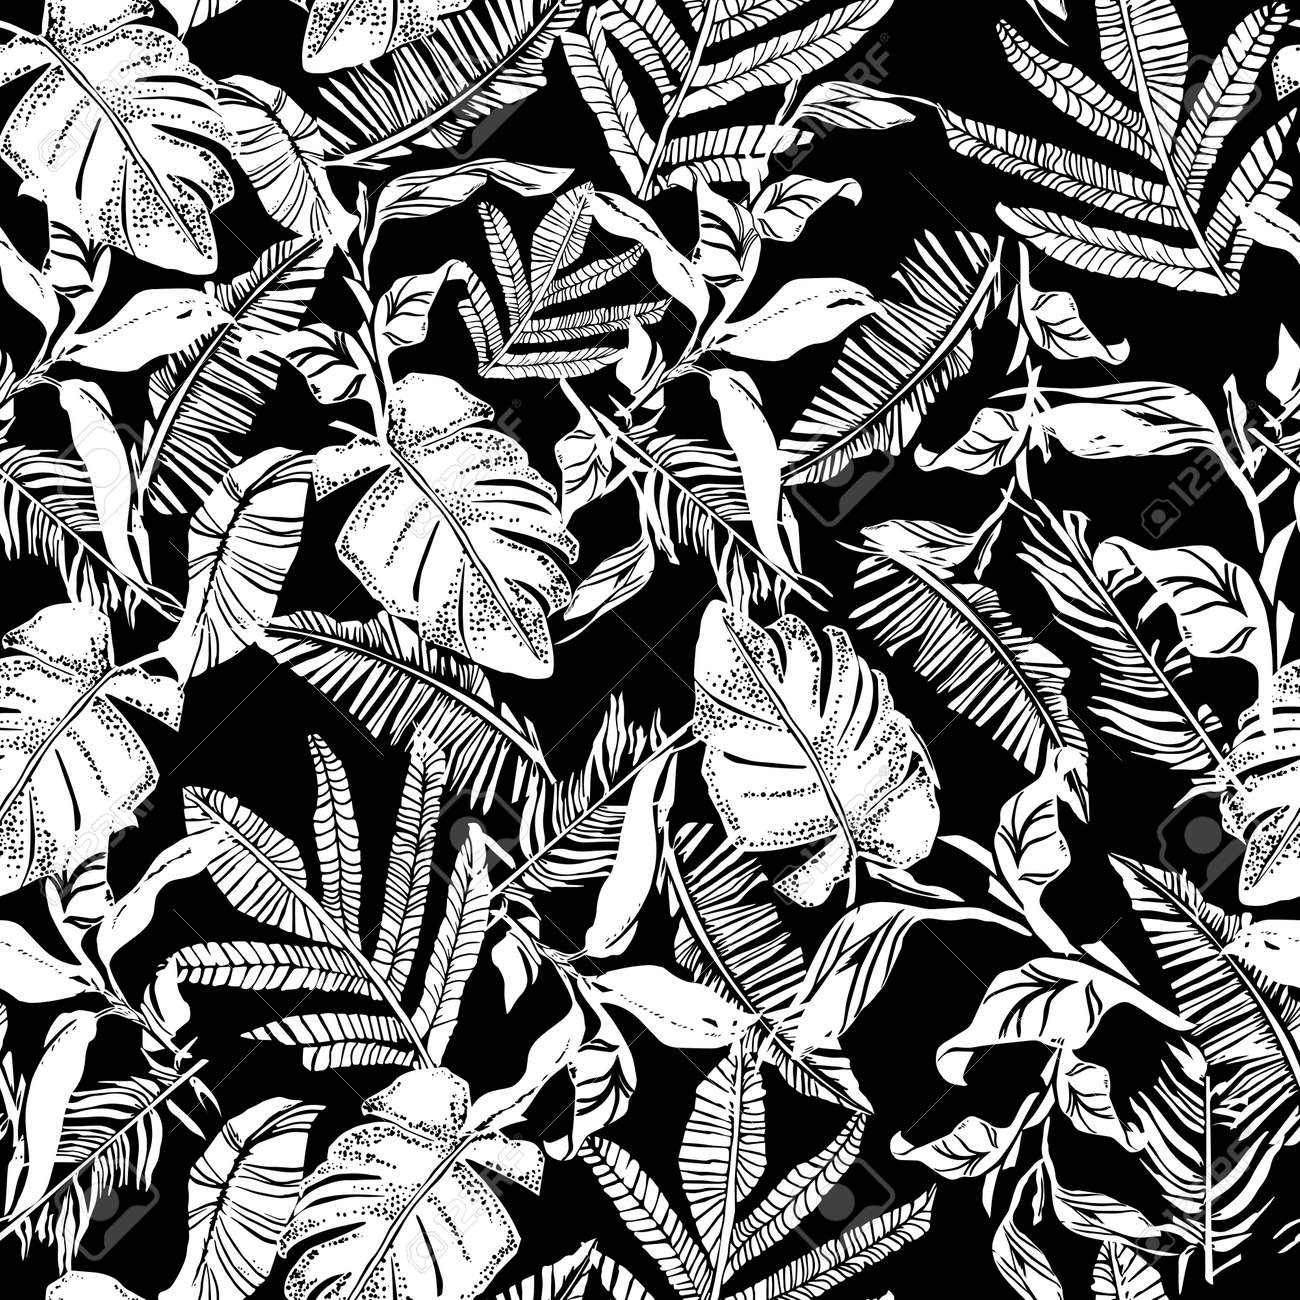 Vector seamless pattern with compositions of graphical tropical leaves, palm leaves,banana leavesand jungle plants. Beautiful black and white tropical seamless background - 154727953